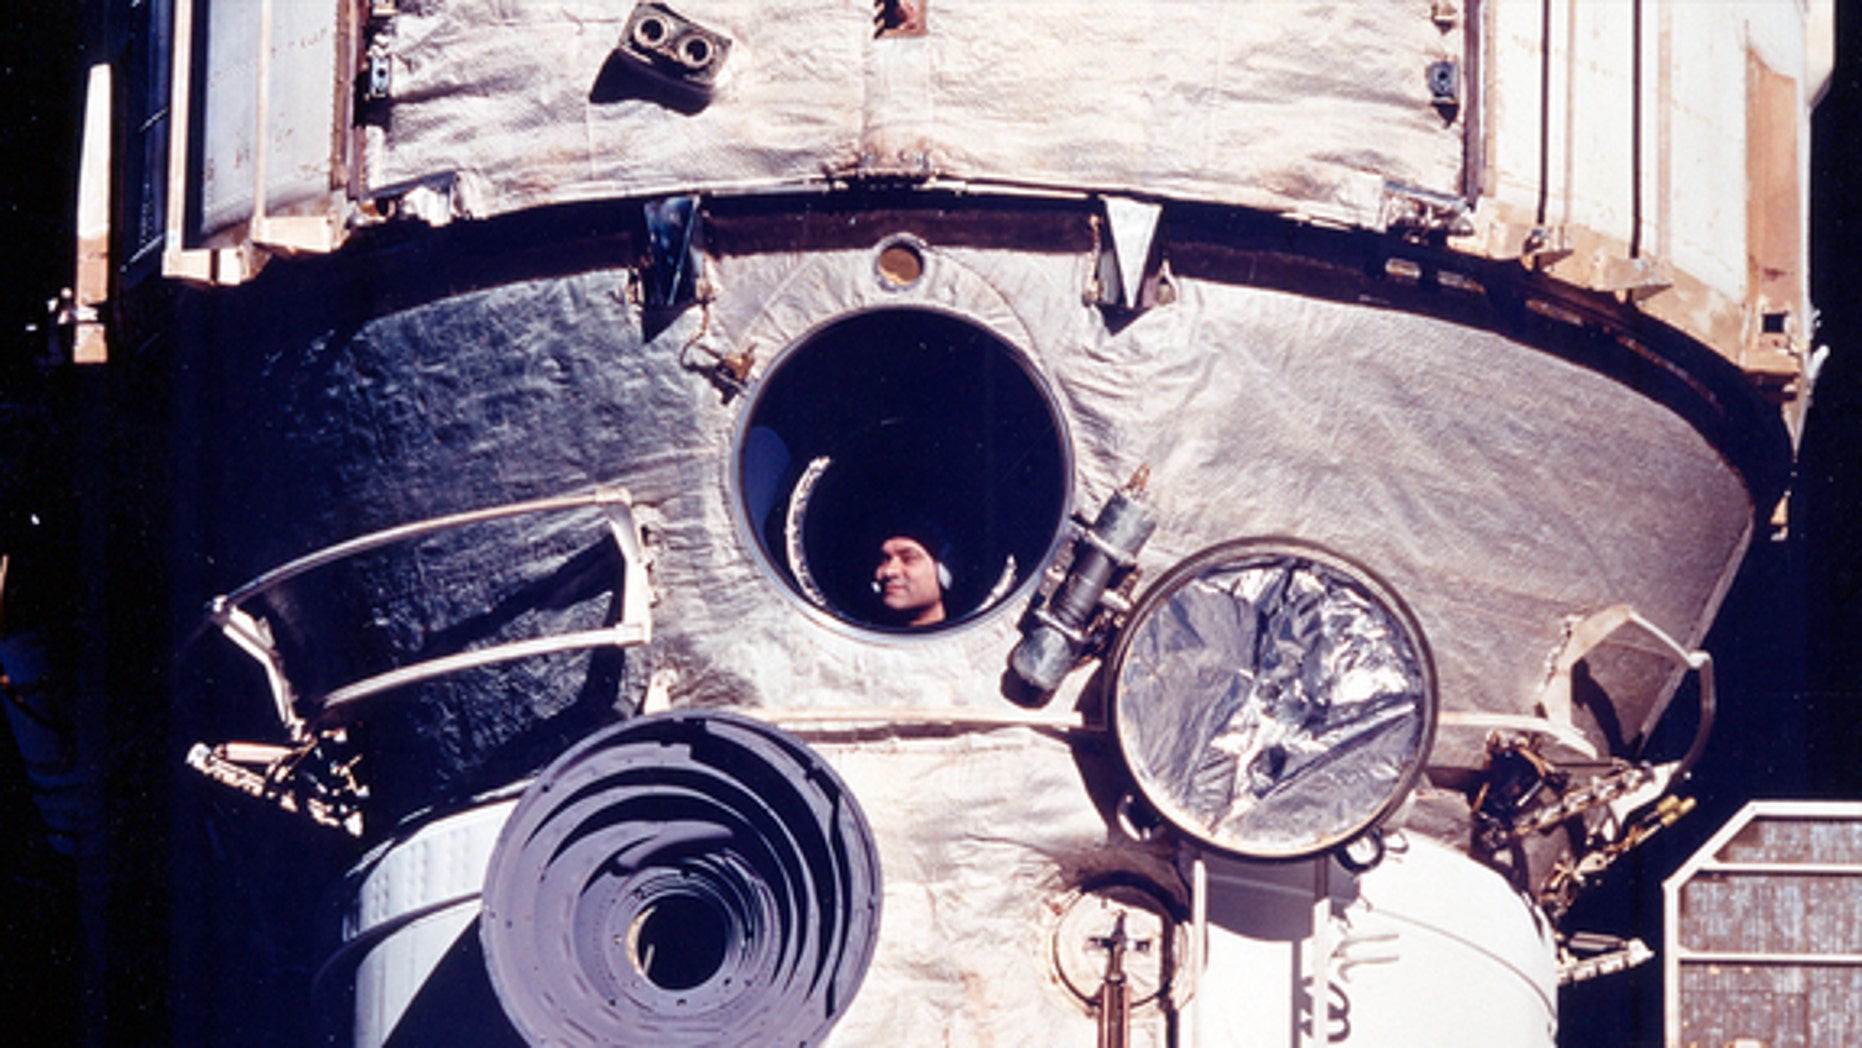 Cosmonaut Valery Polyakov looks out the Russian space station Mir's window during his record-setting 438-day mission from 1994 to 1995.